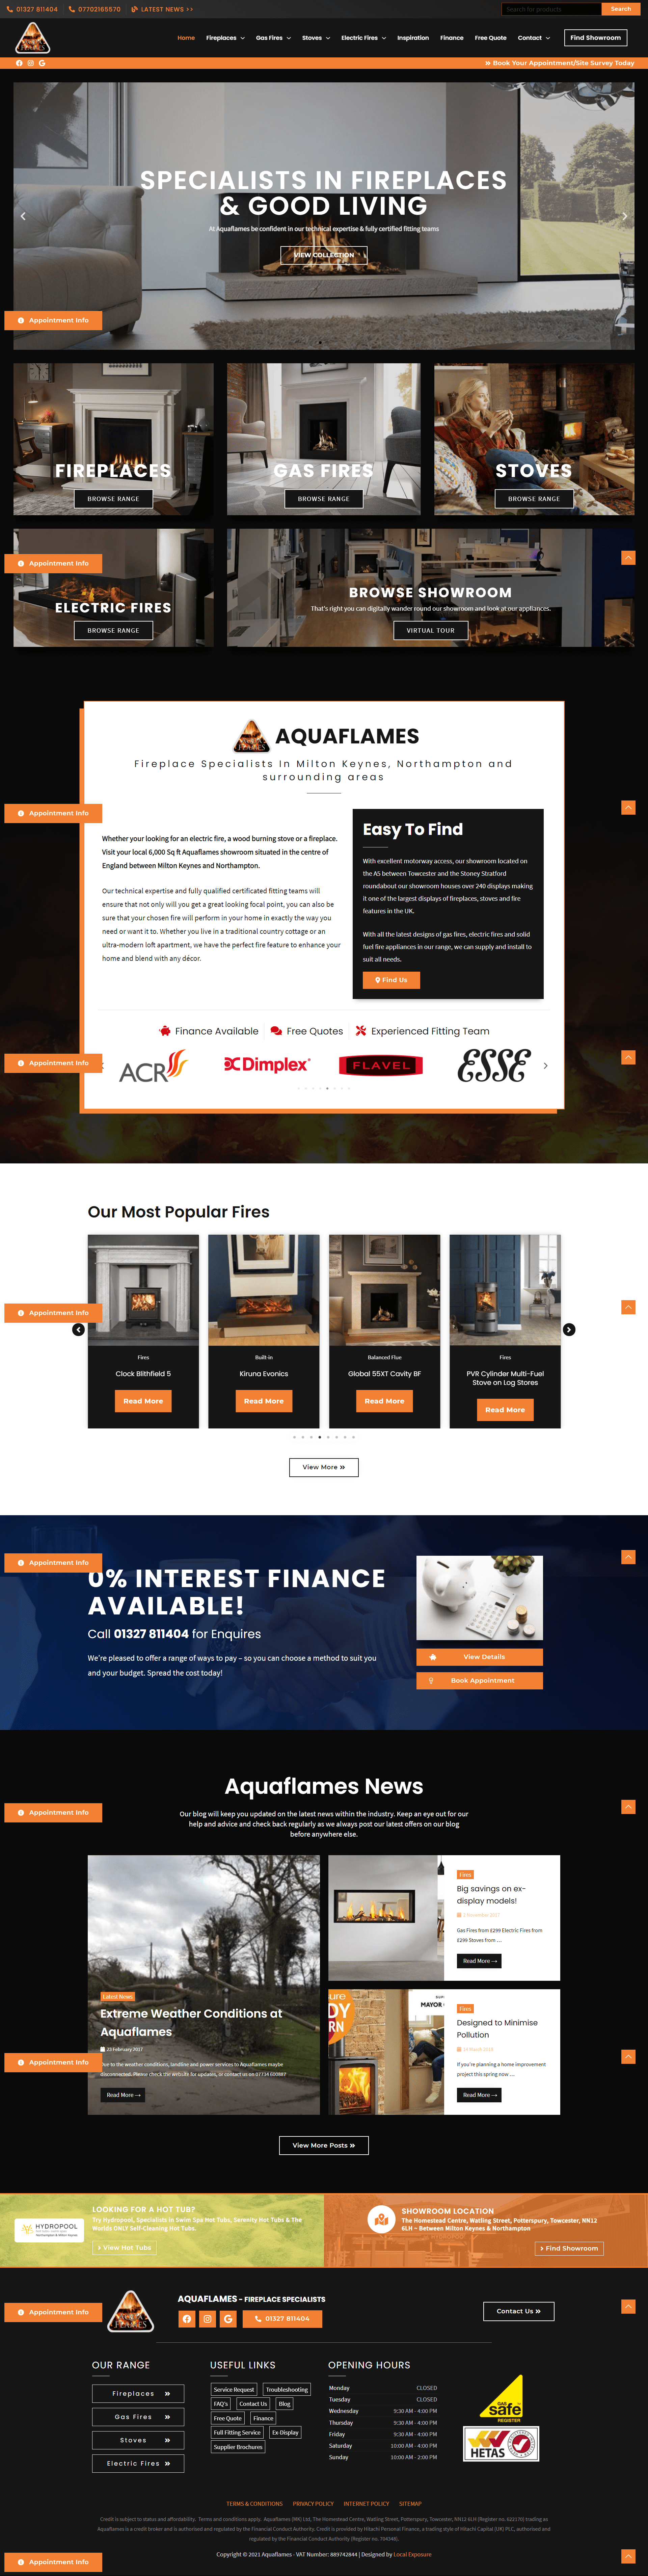 Fireplace Showroom Web Design Example